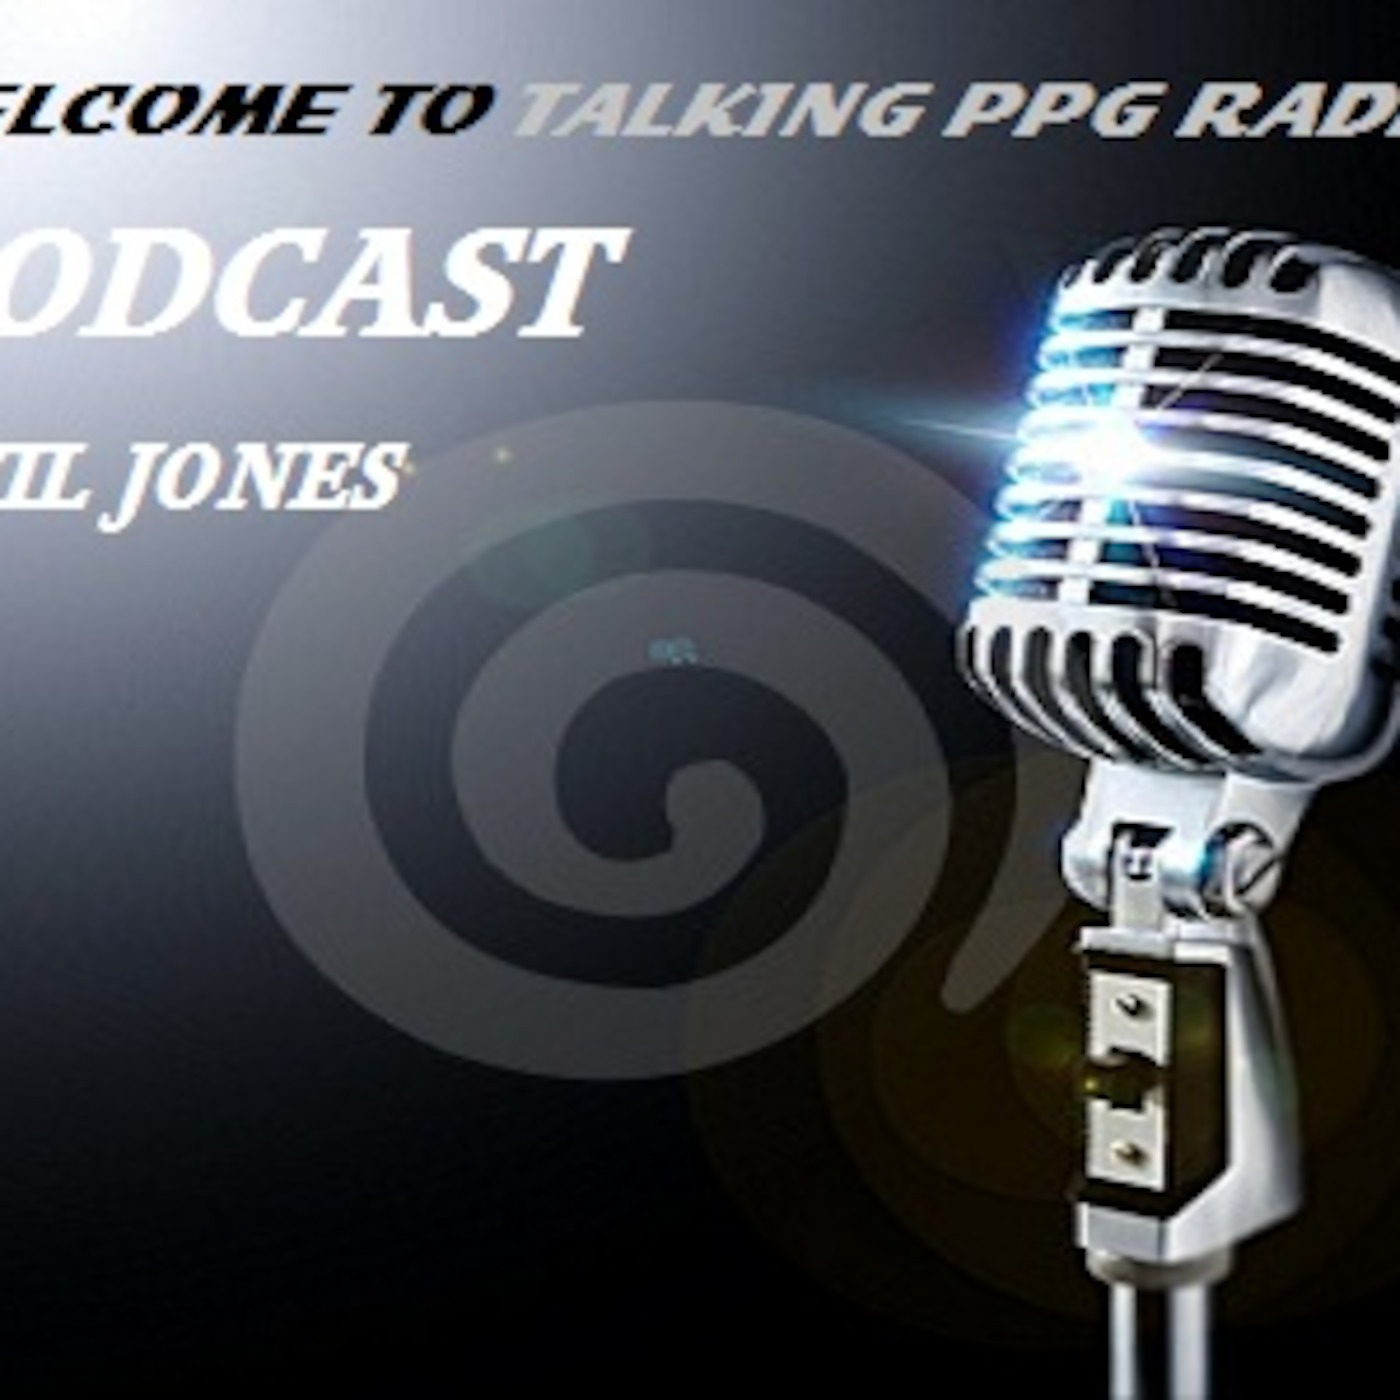 Talking PPG Radio